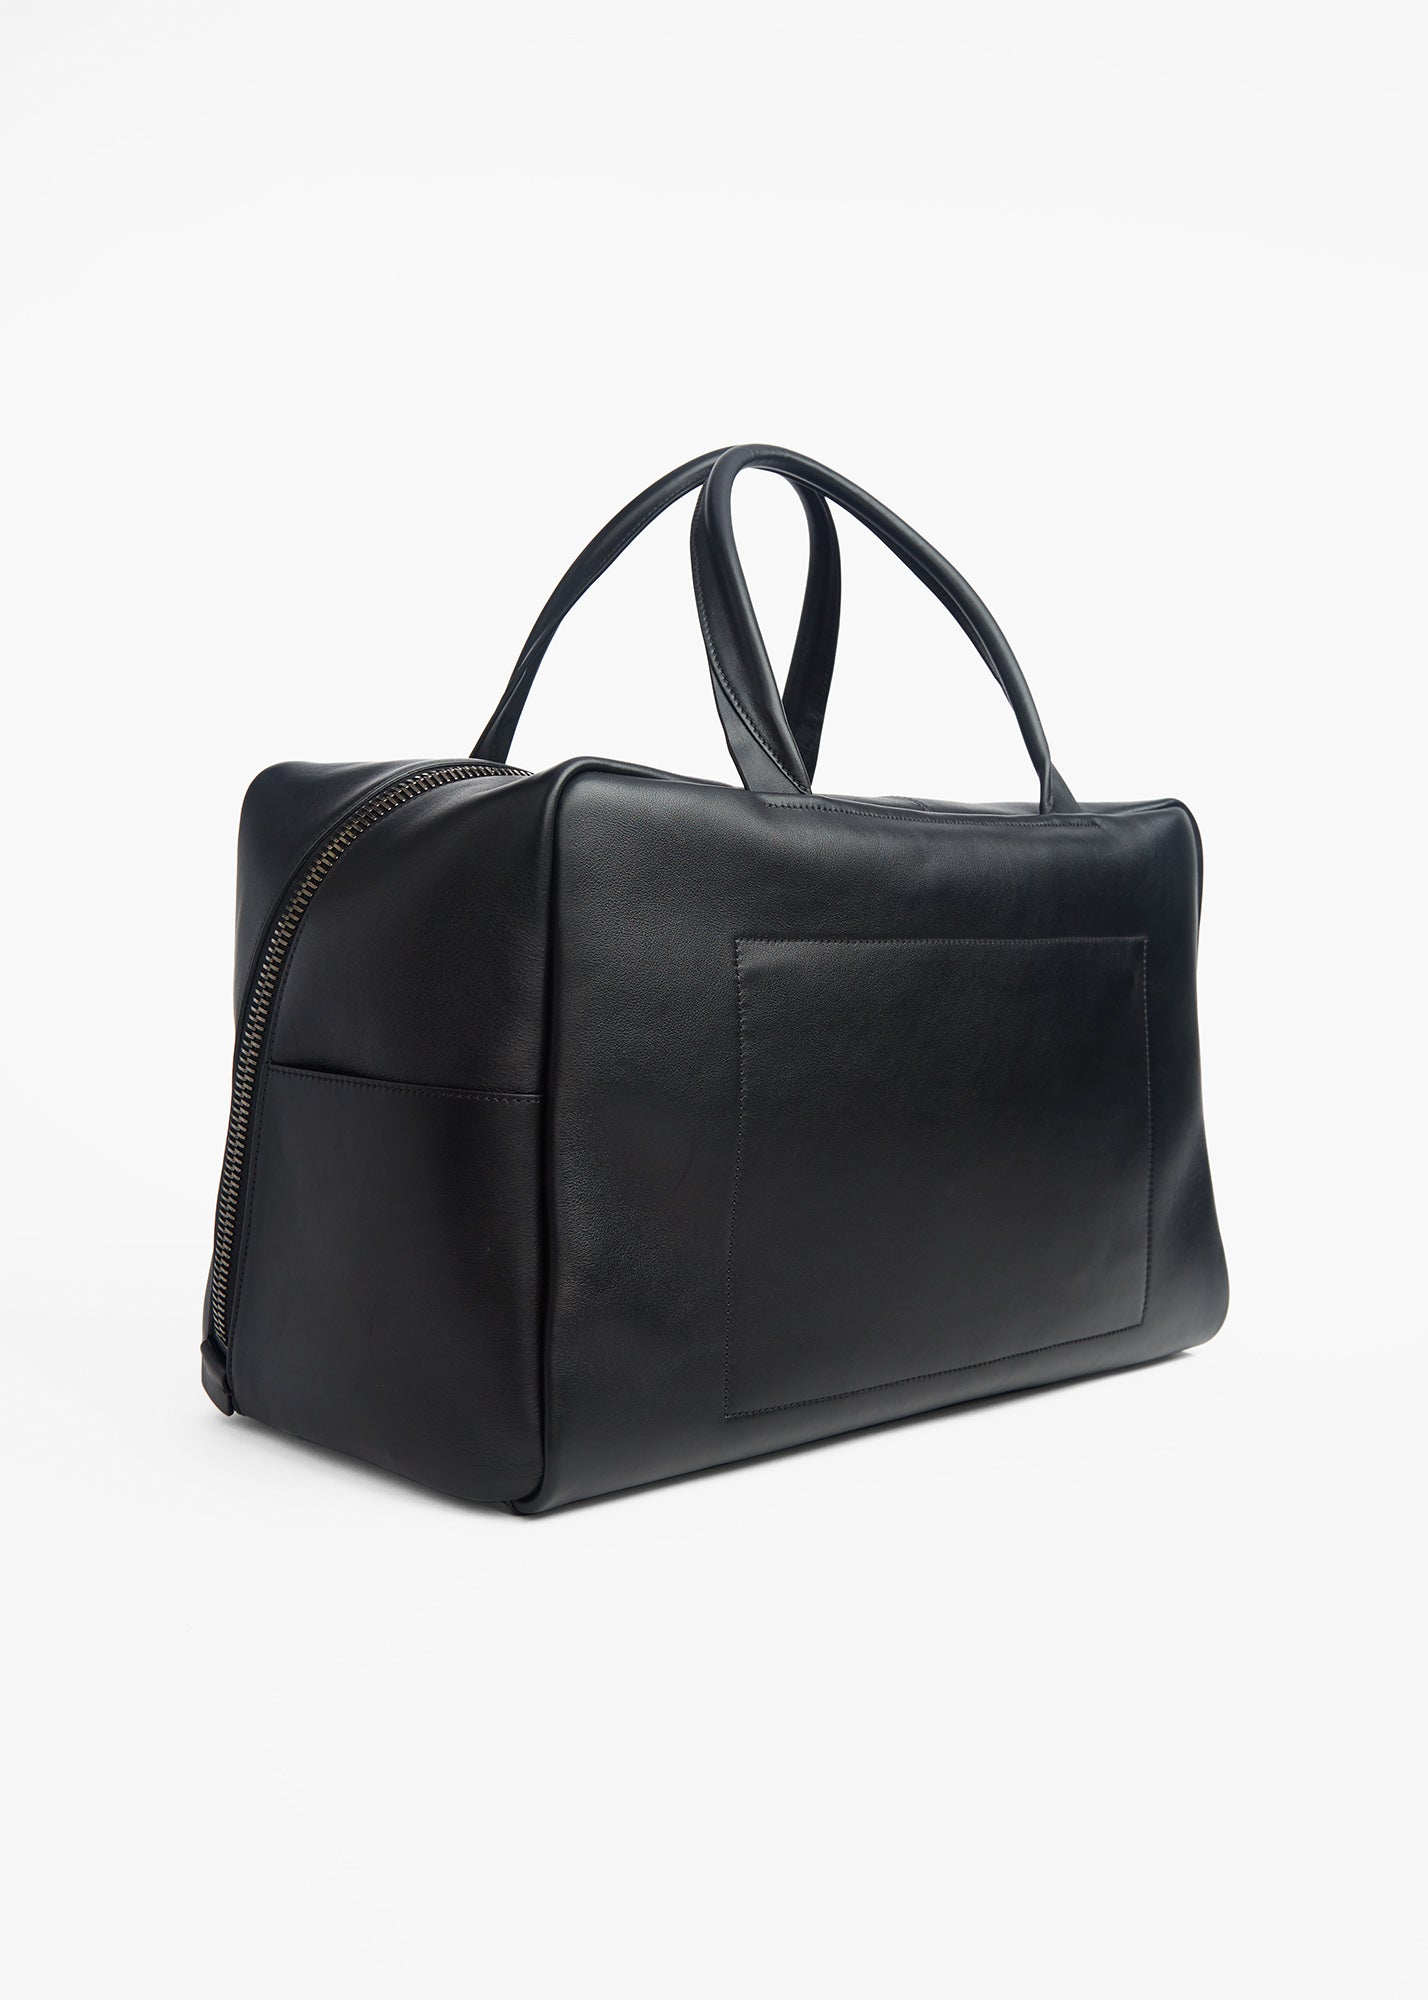 47 Holdall Bag Black